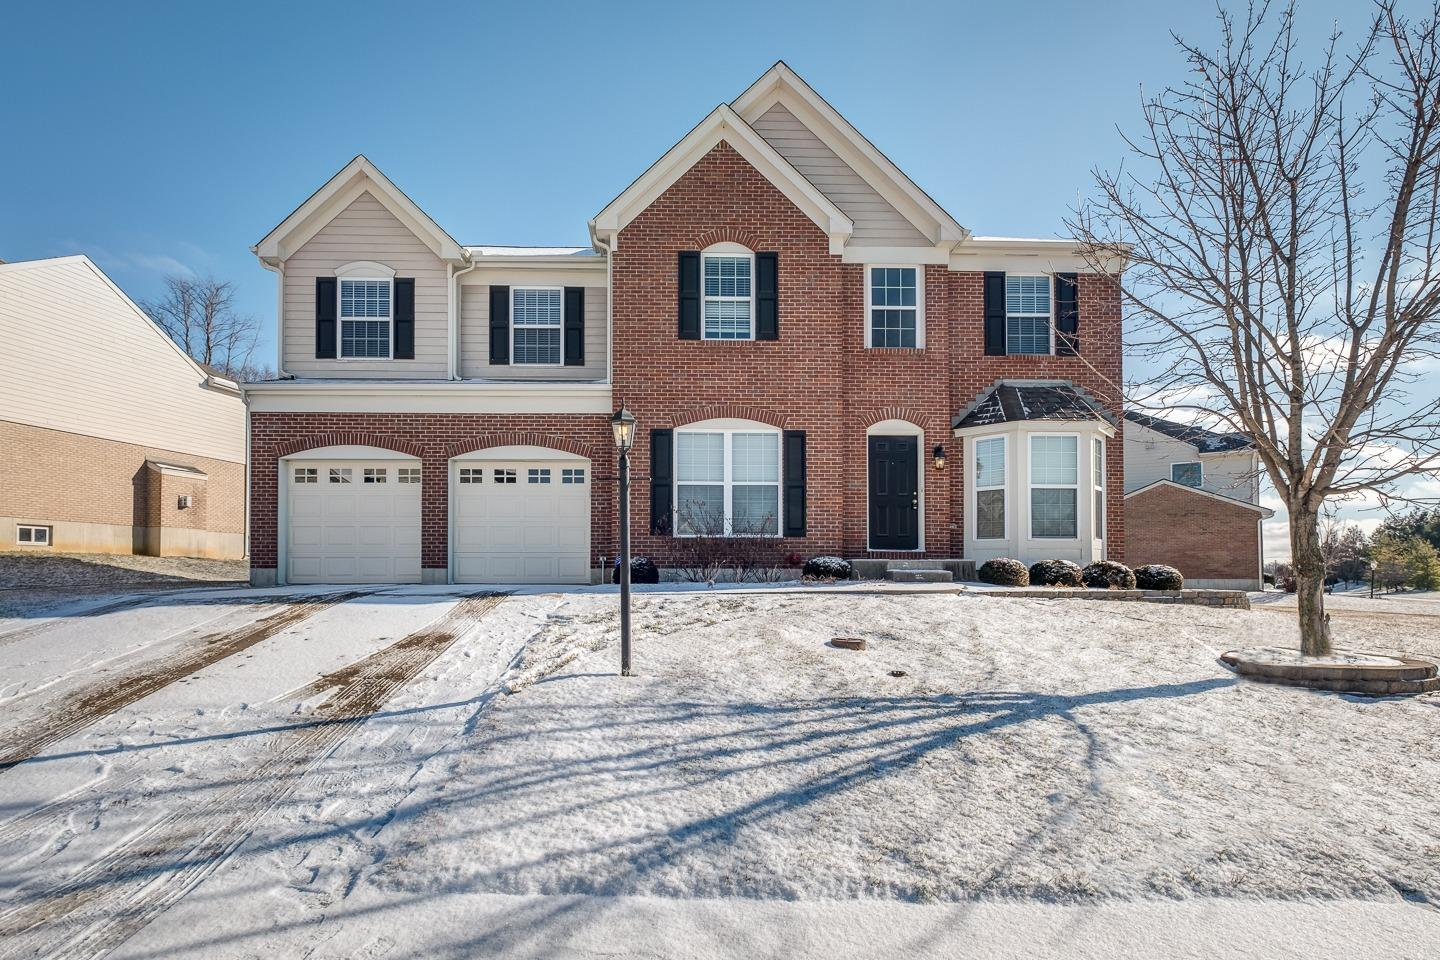 2545 Hingham Ln Montgomery Co., OH